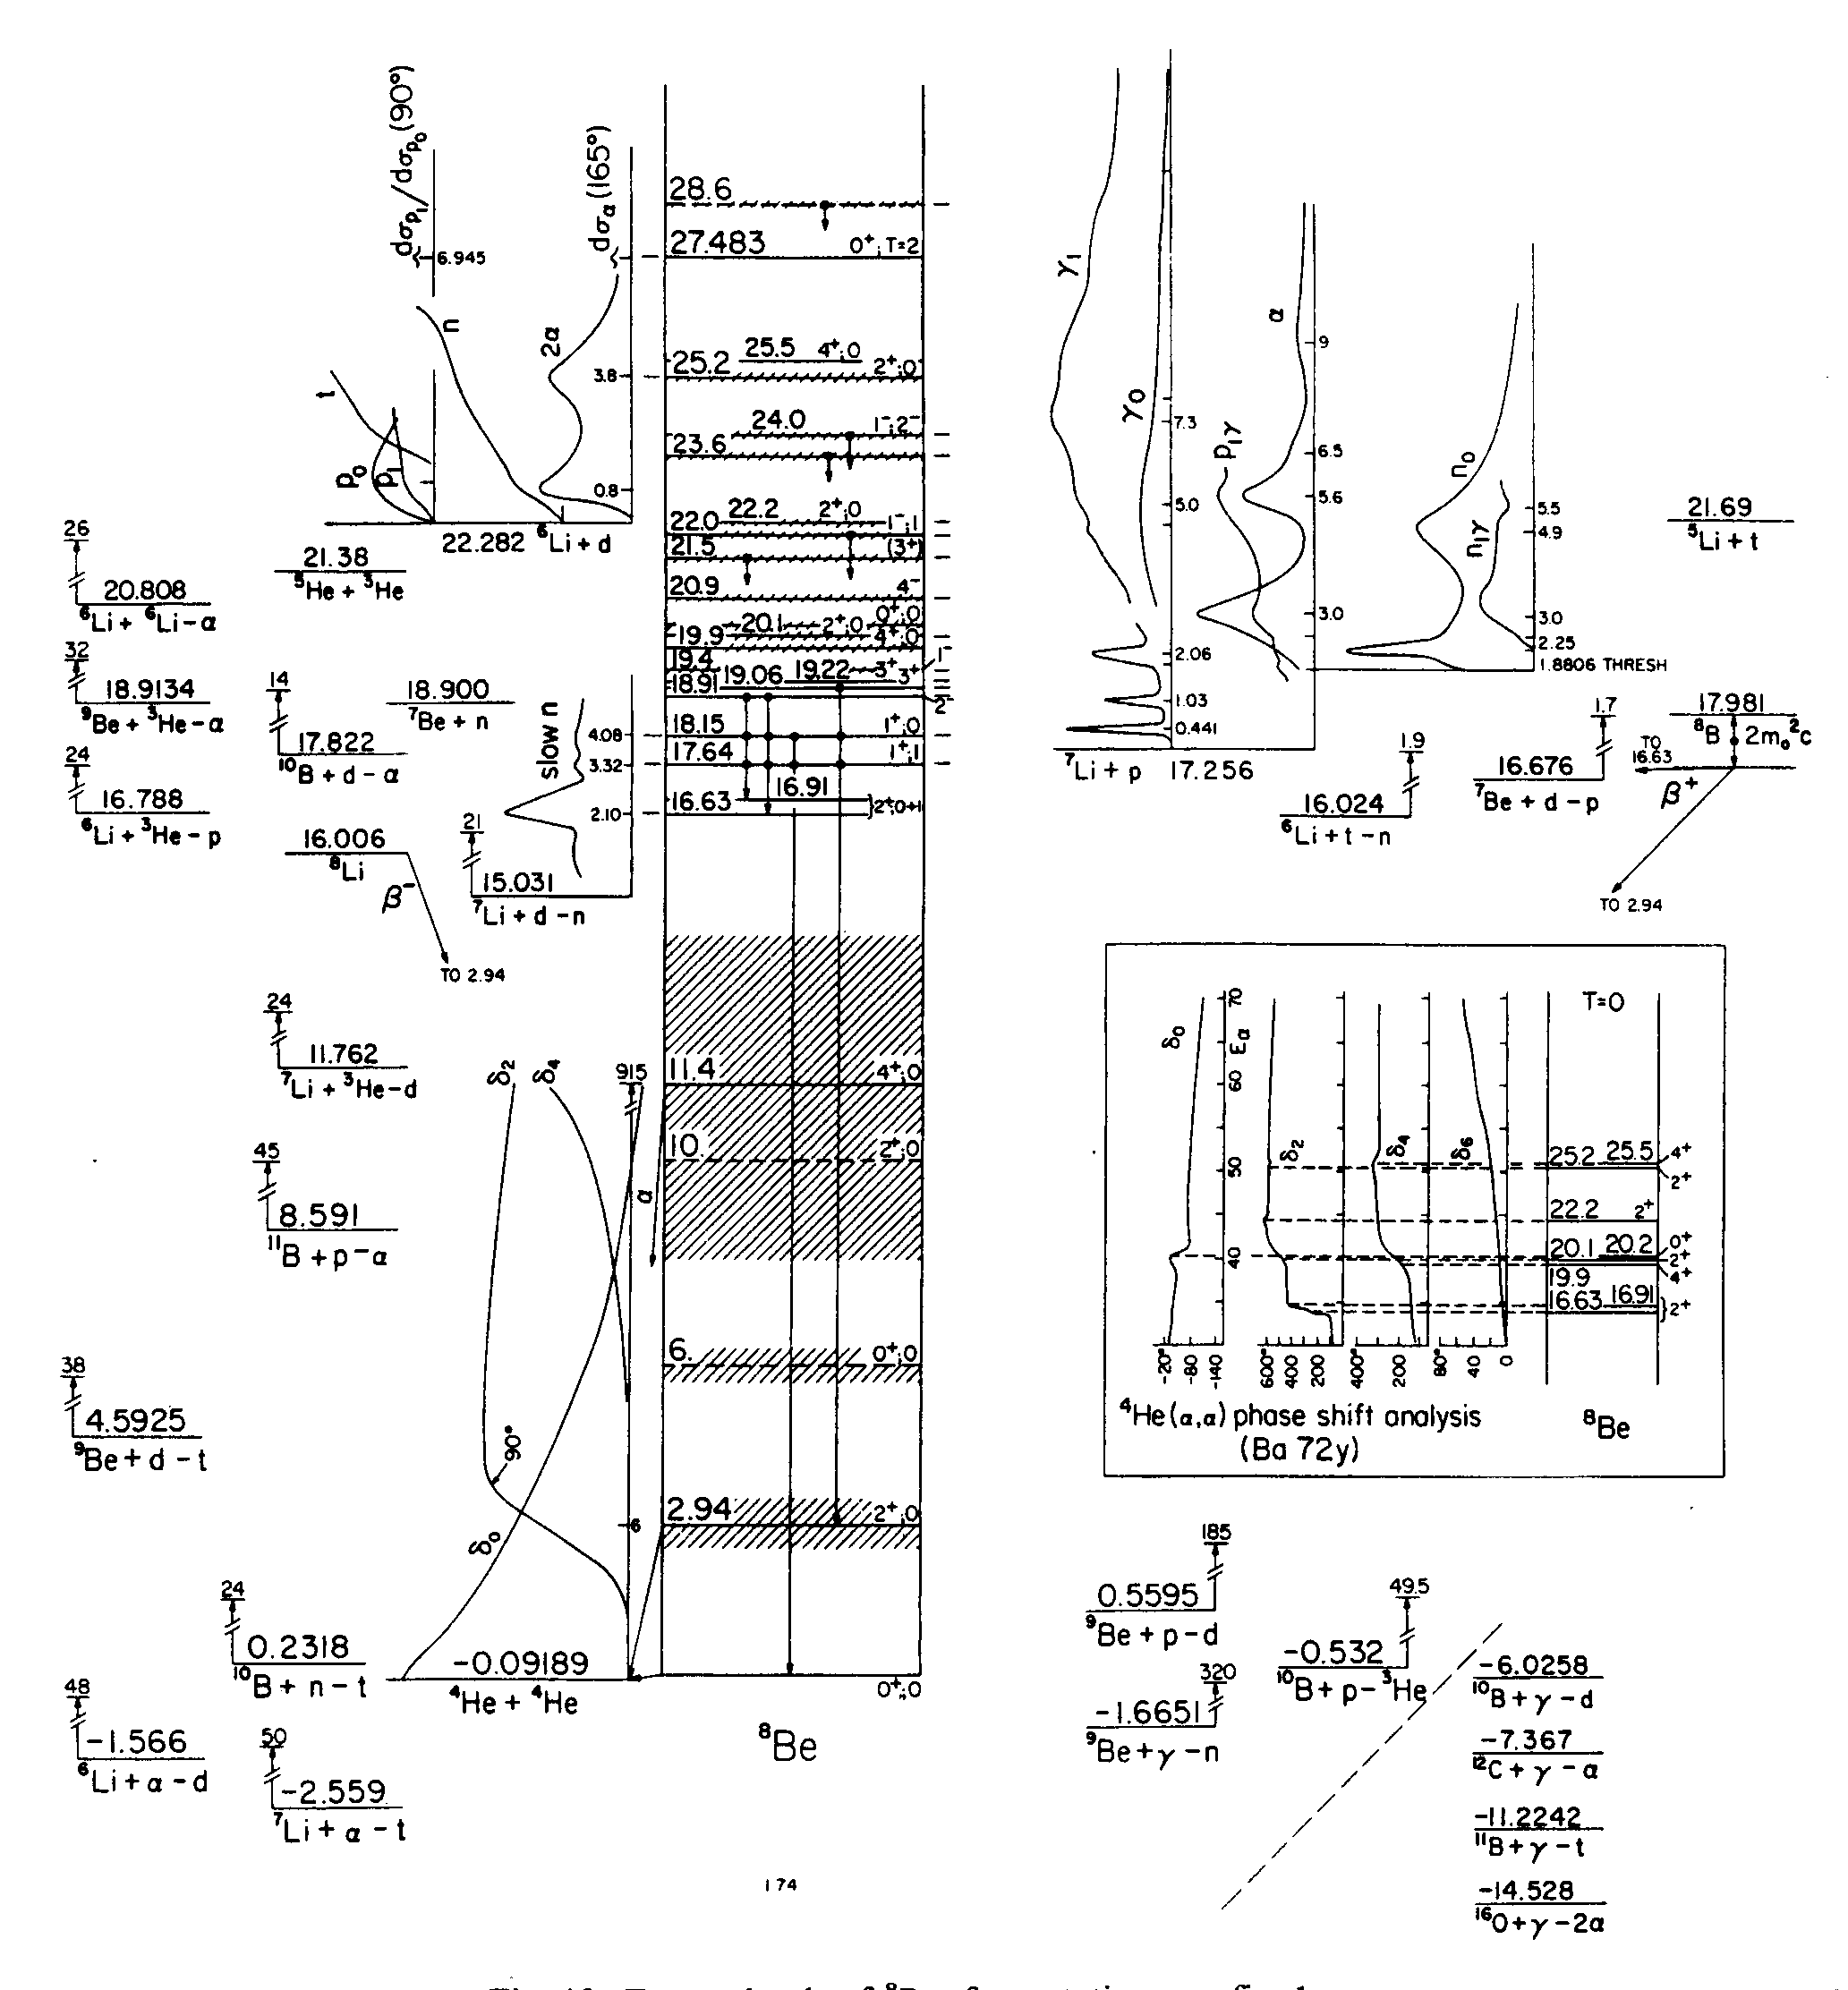 Nuclear Physics Based On The Diagram Above Showin